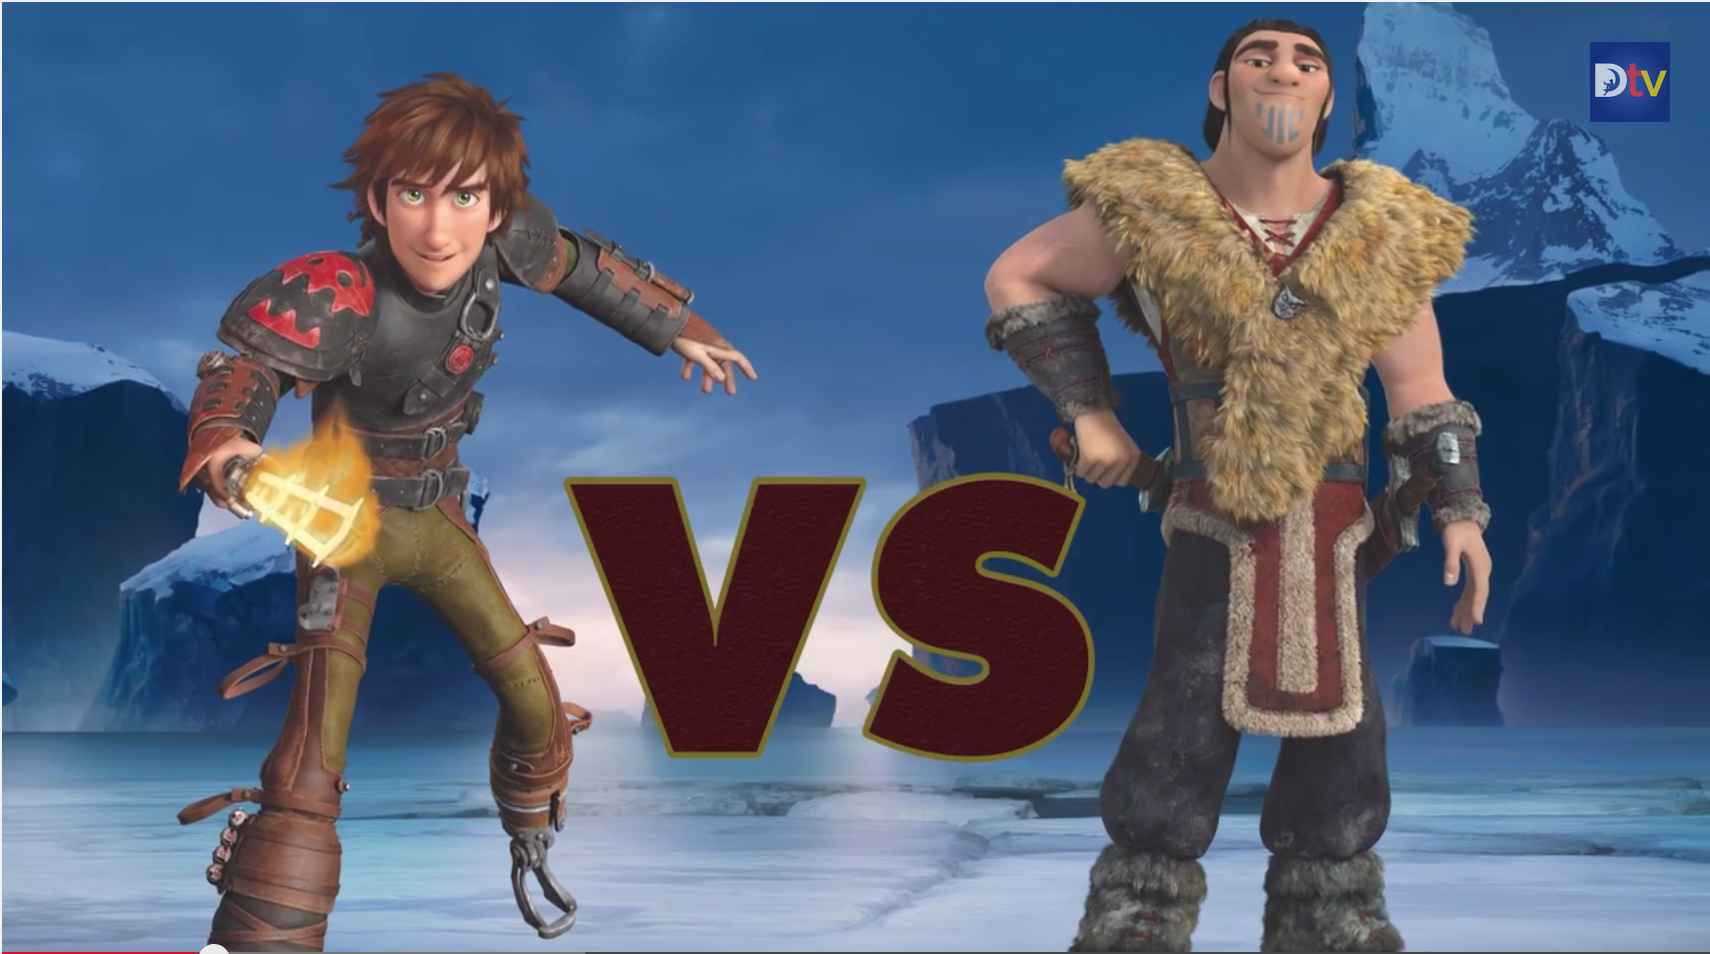 Deblois Nixes How To Train Your Dragon 4 Plus A Deleted Scene From